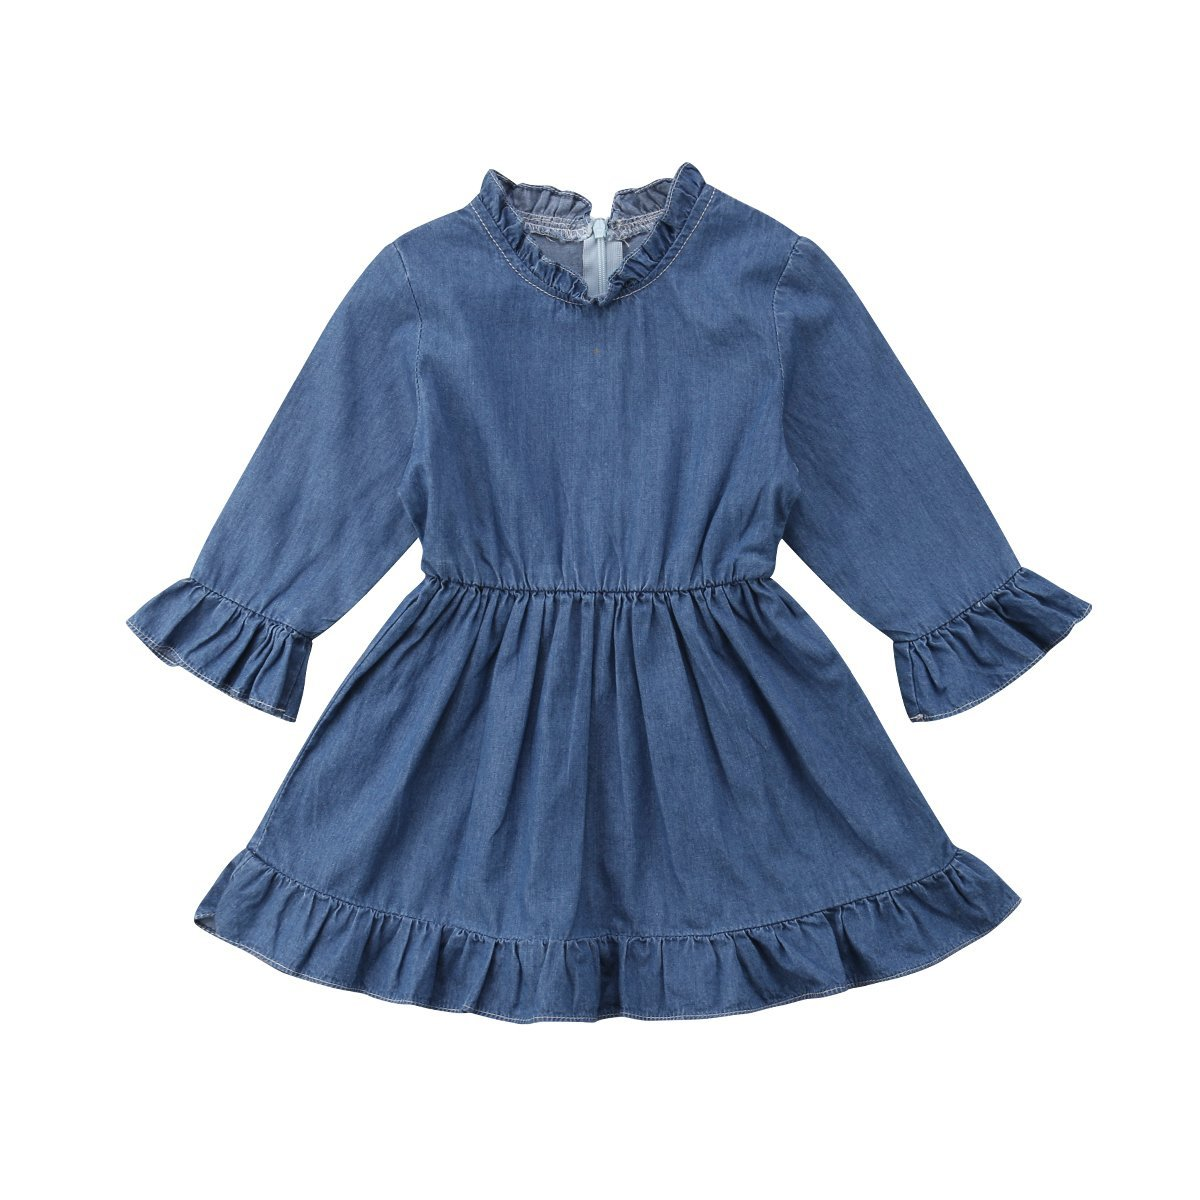 Mubineo Baby Girl Newborn Infant Fall Demin Ruffle Long Sleeve Tutu Dress